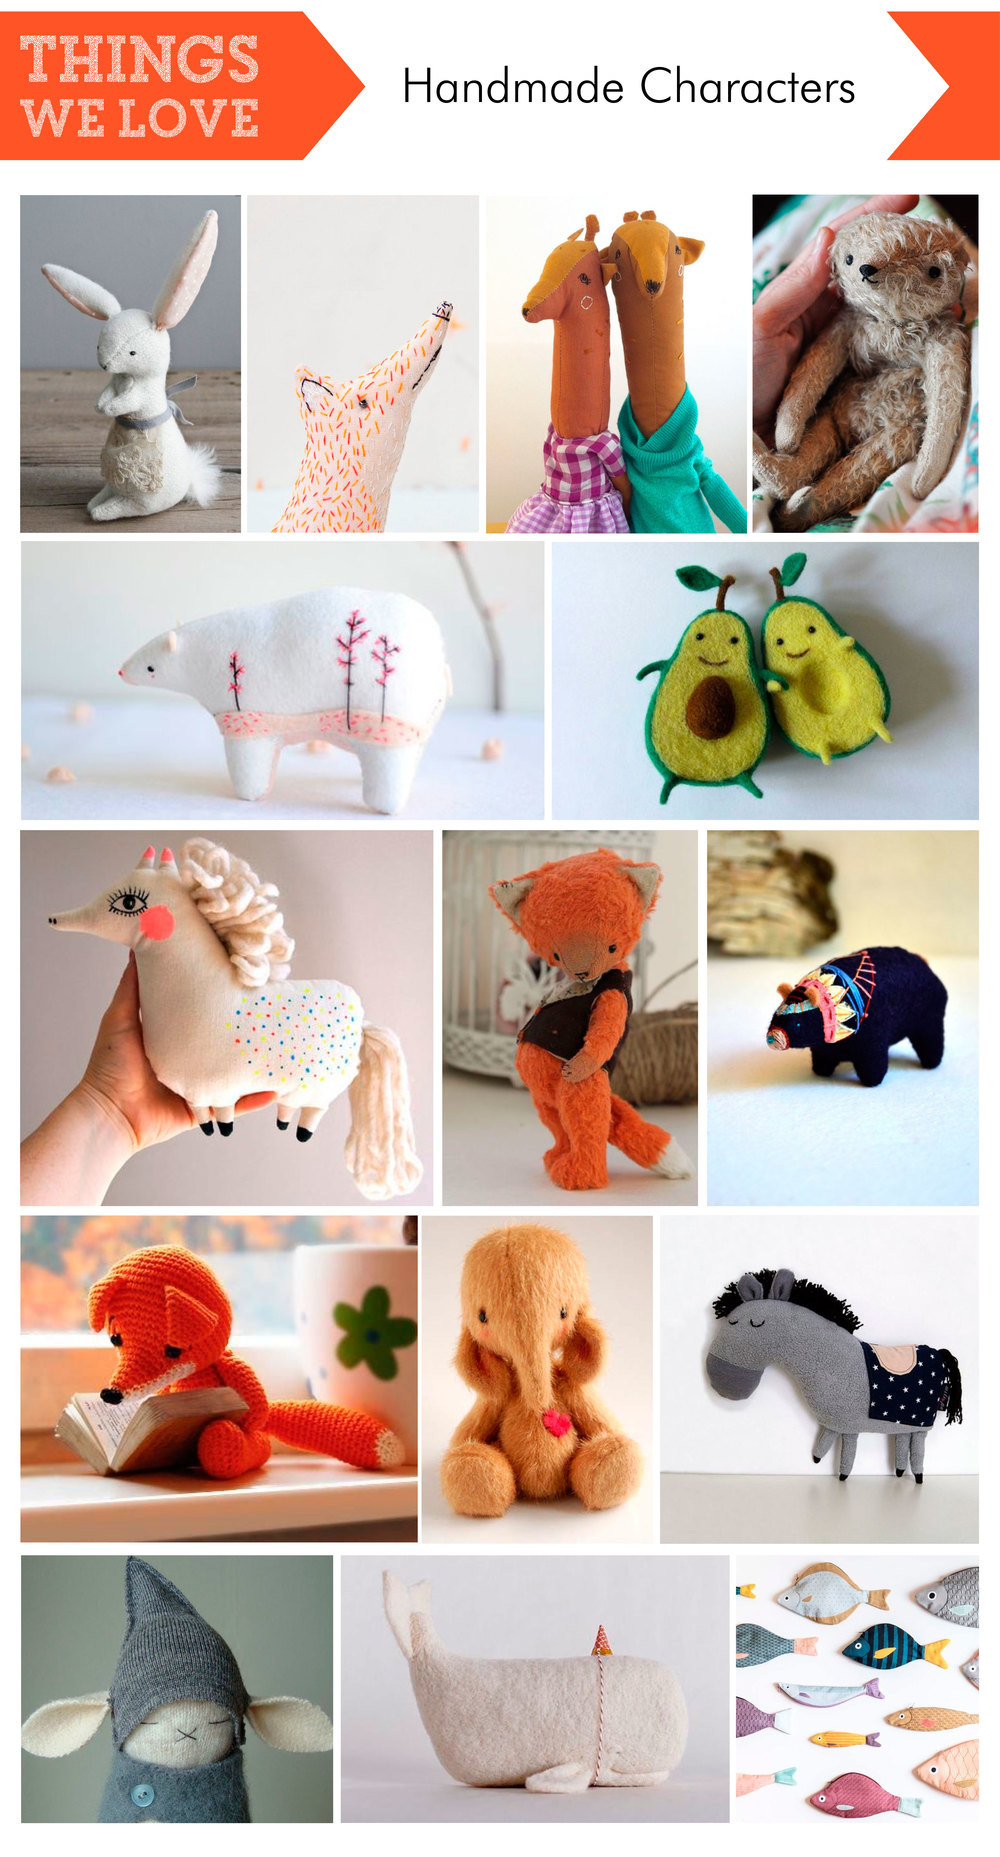 Images from top right: everyeskimo pinterest young hawks and foxes andothersillythings moutroyalmint bored panda pinterest pinterest mountroyalmint pepika pinterest milipa fierecebunnys petit felts dudua